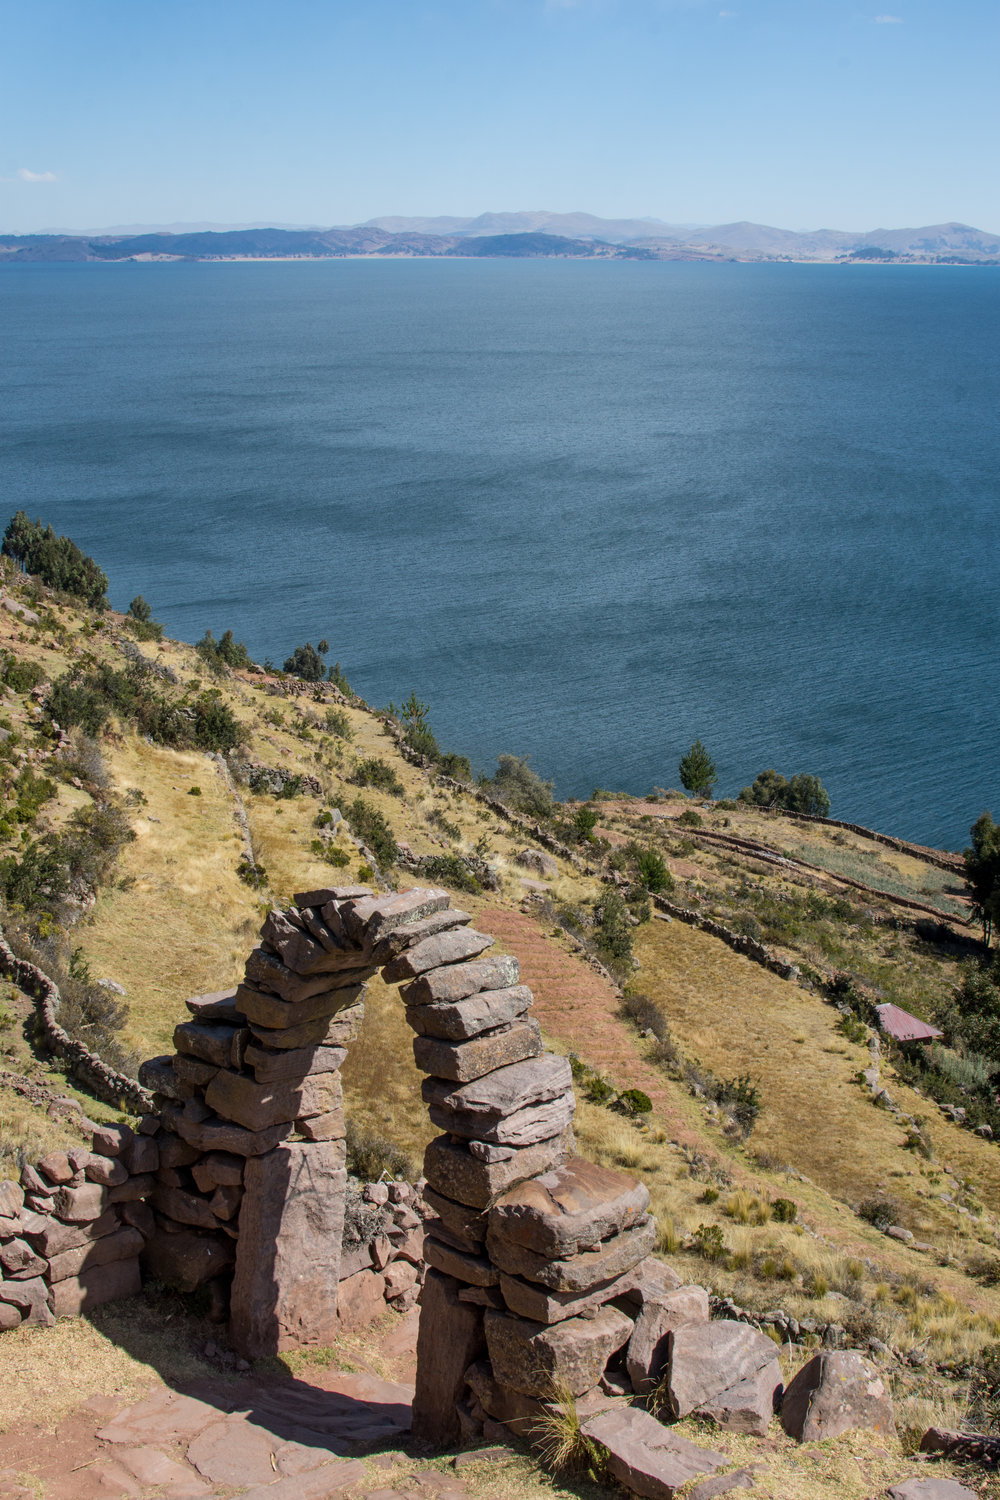 Taquile Island on Lake Titicaca